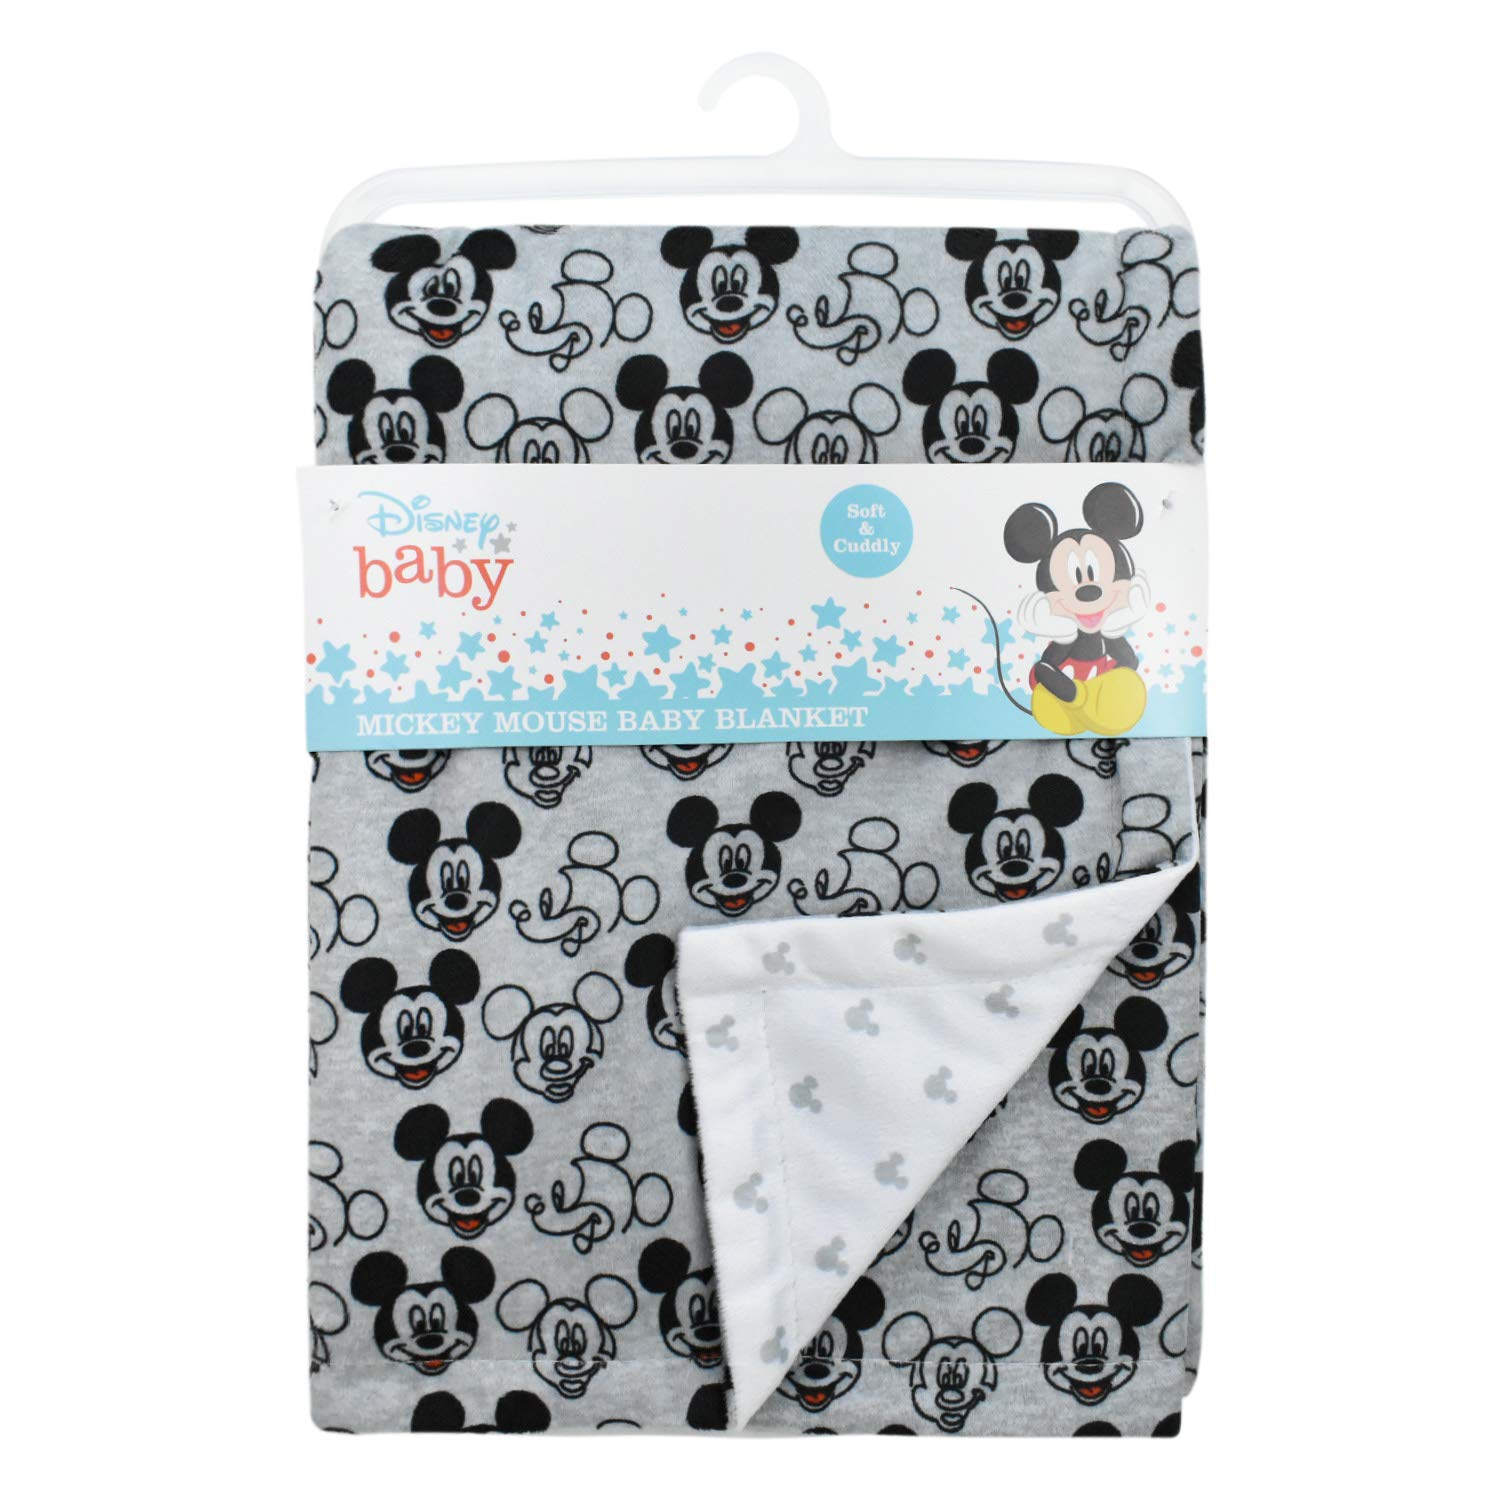 Disney Baby Boy Mickey Mouse Grey Mink Double Sided Blanket-baby shower gift, mickey mouse, mouse blankets, nursery, crib blankets, stroller blankets